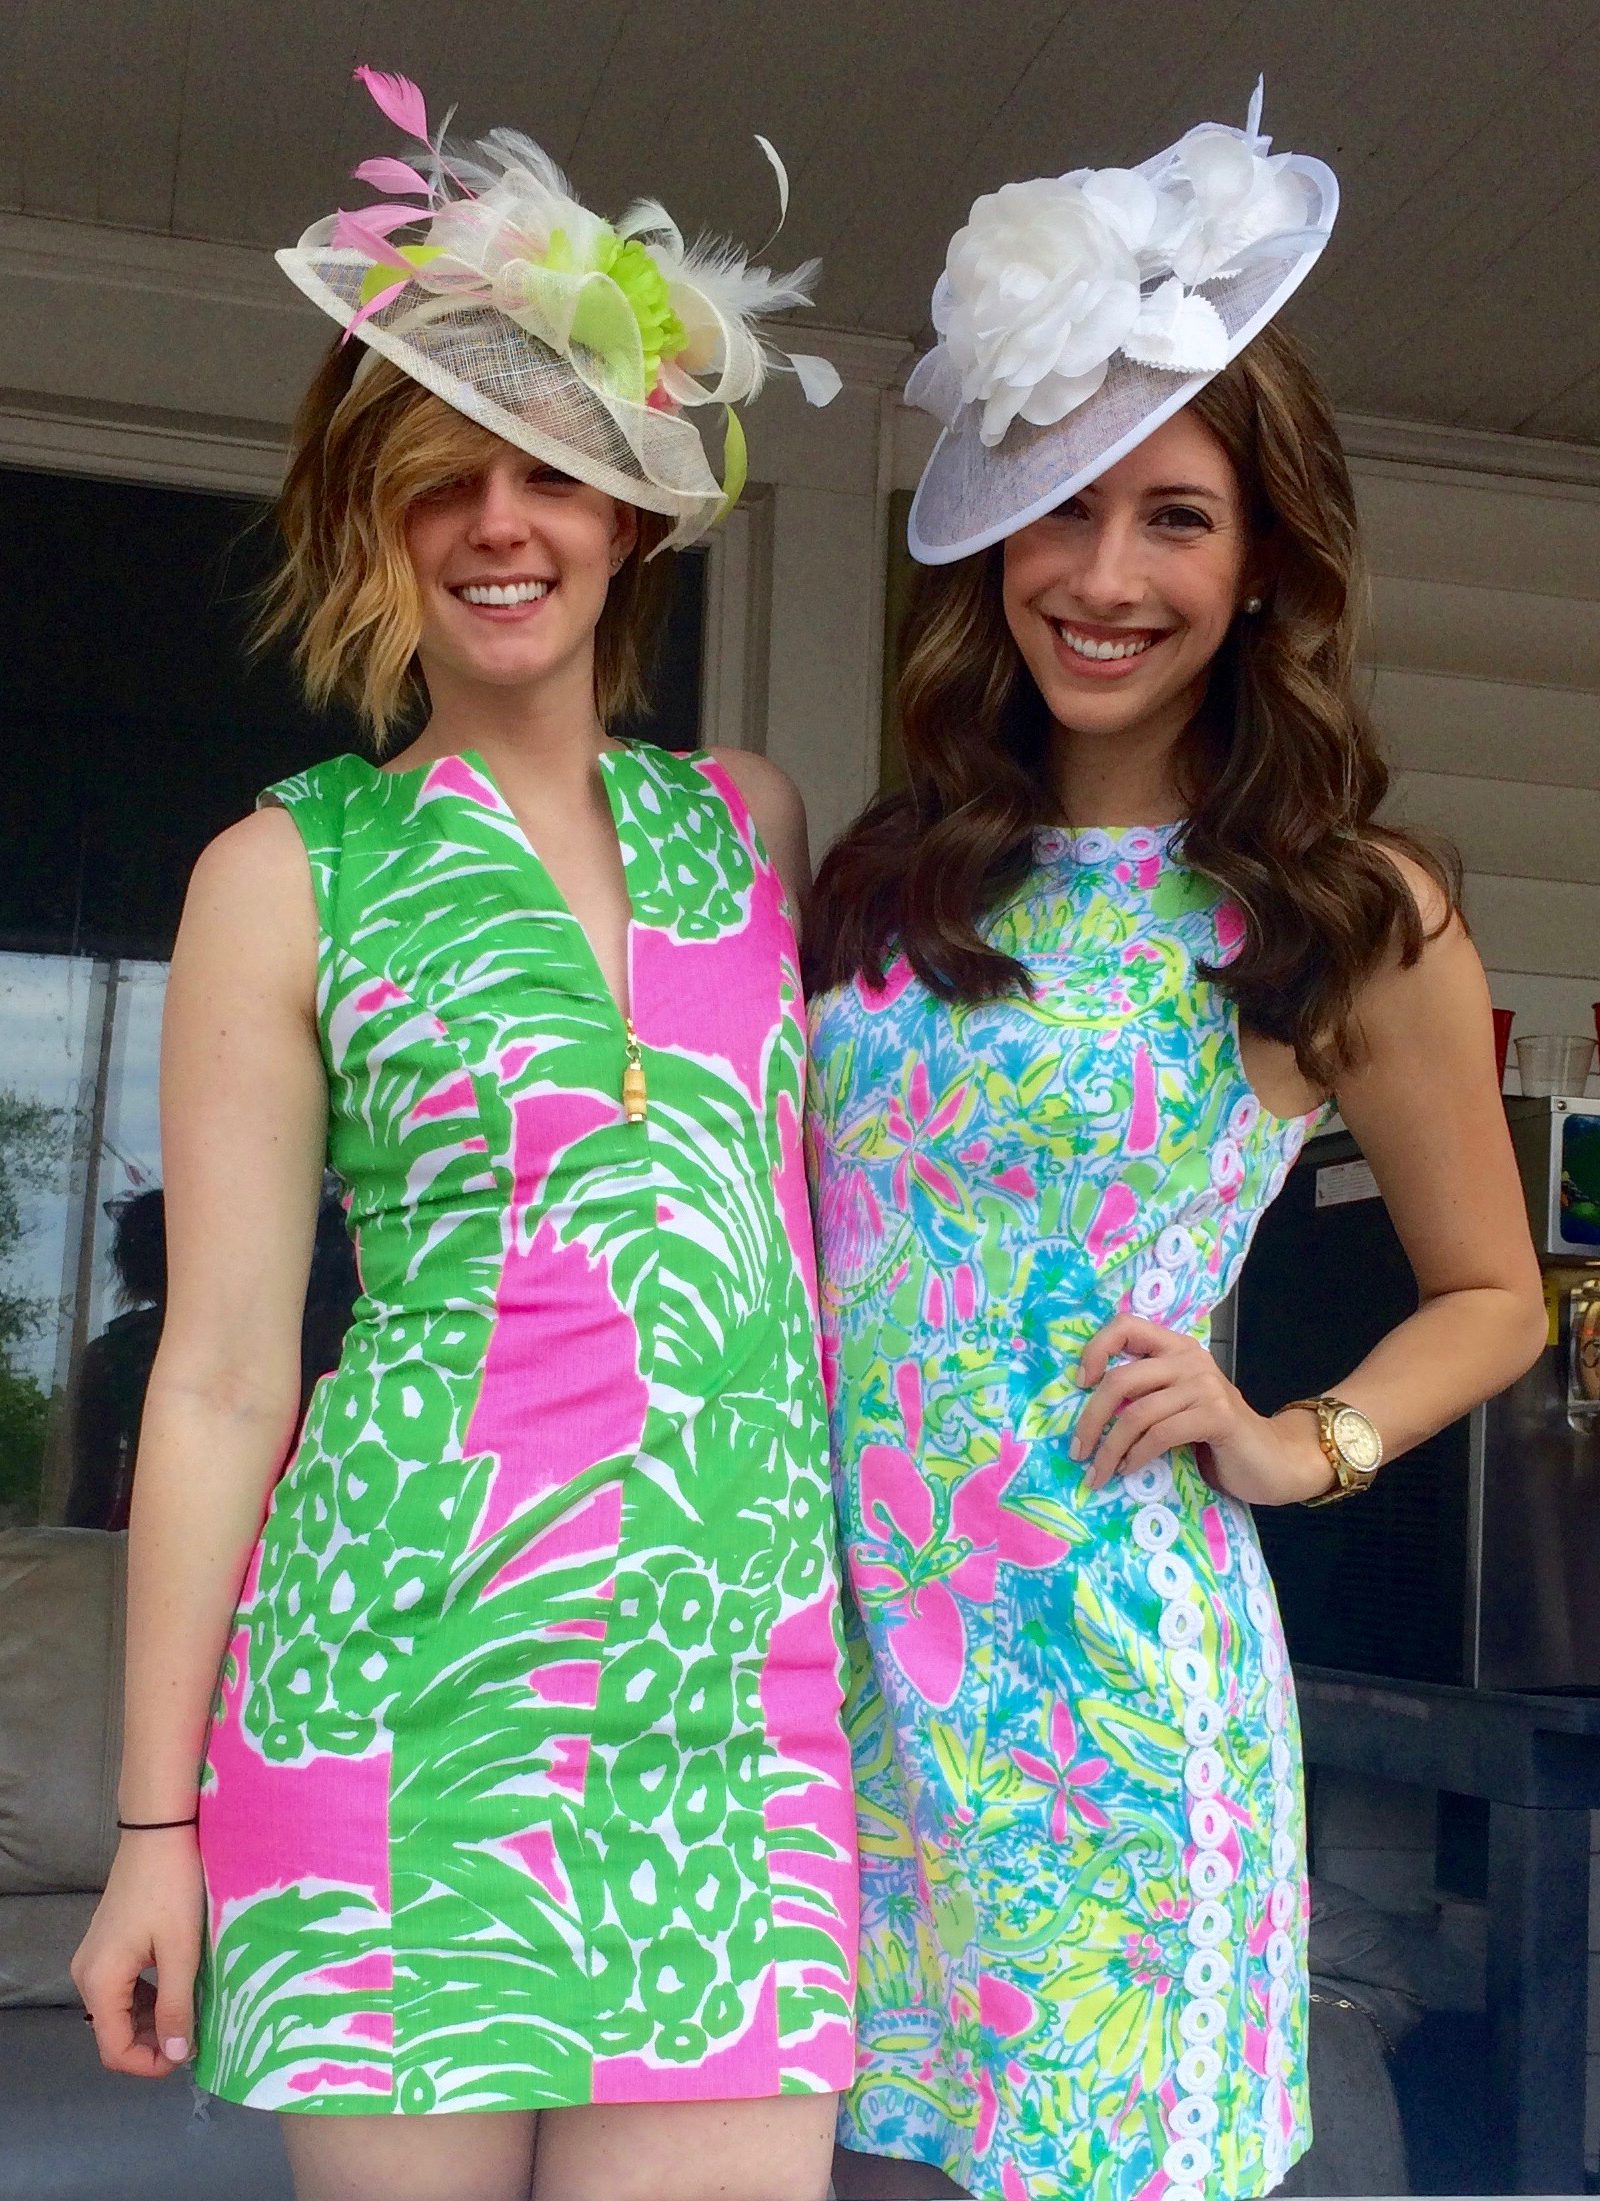 Southern Living, Trip to Nashville and the Kentucky Derby